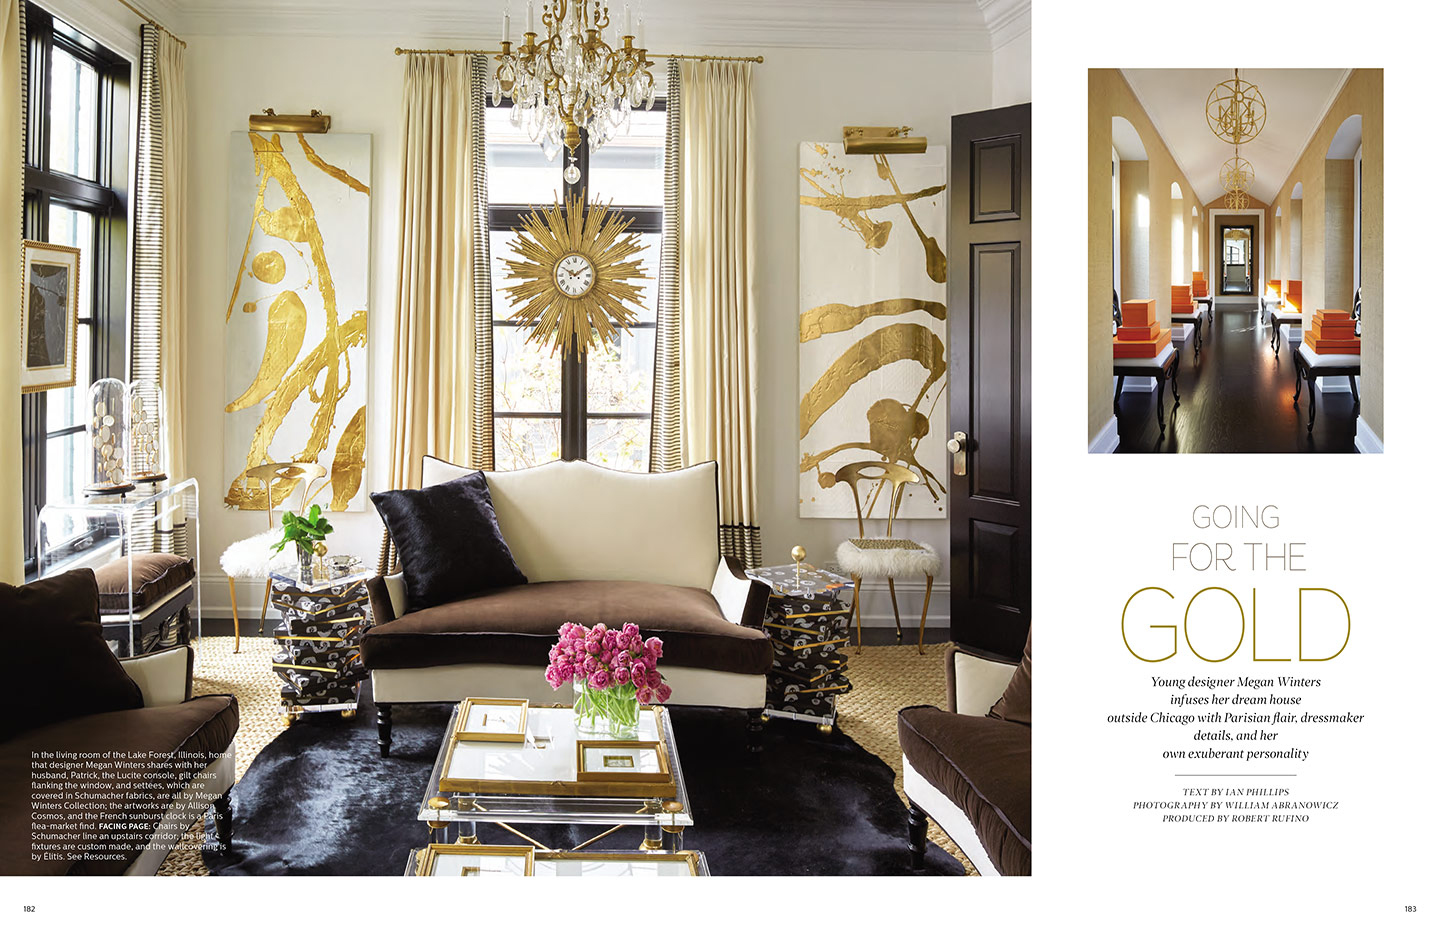 Elle-Decor-Gold-and-White-abstract-paintings-by-Allison-Cosmos-for-Megan-Winters